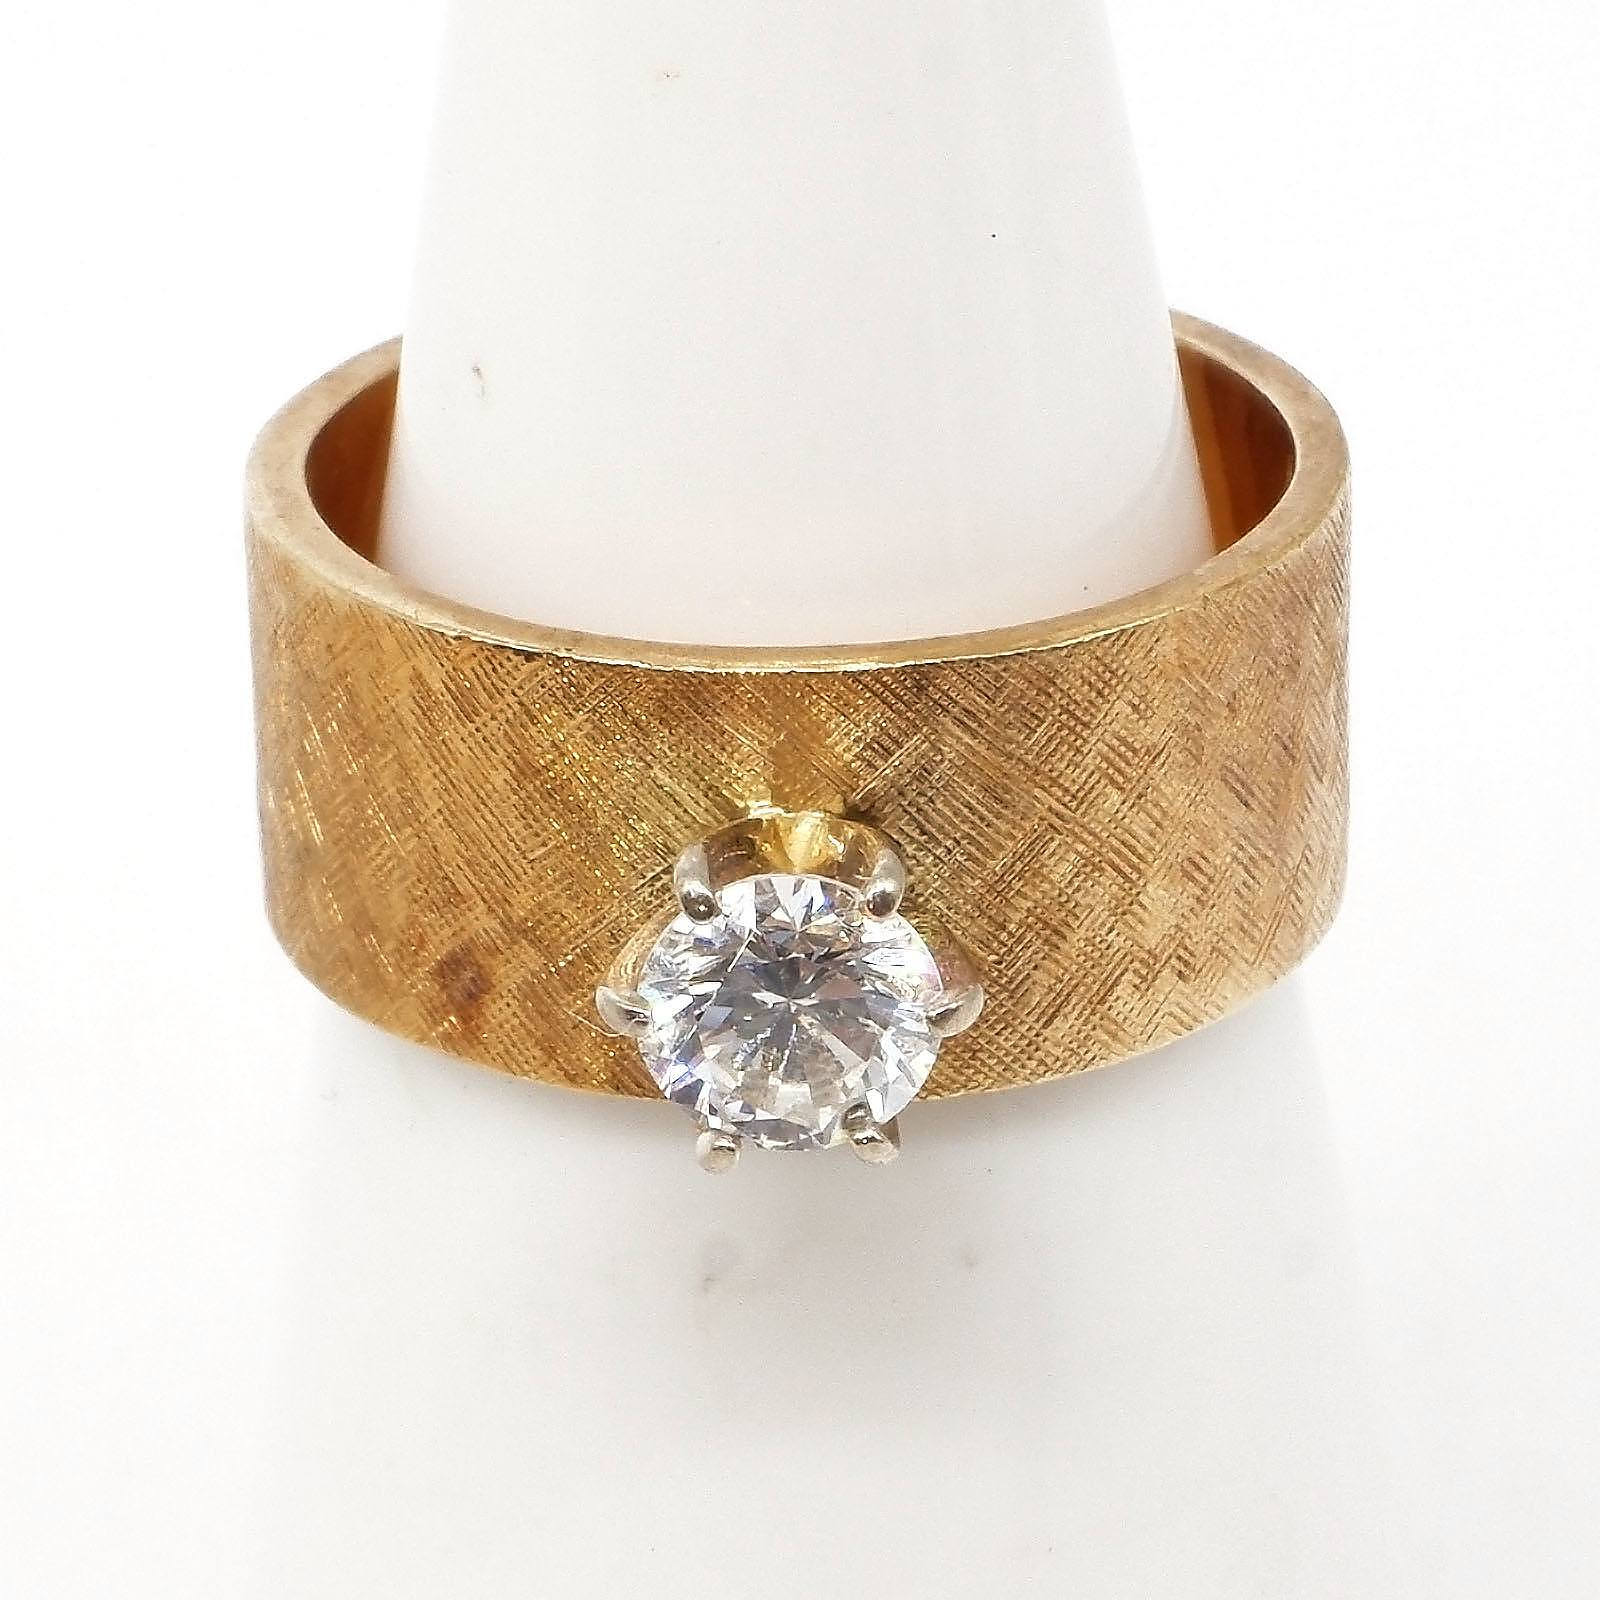 '14ct Yellow Gold Ring with Satin Finish and Raised White Gold Six Claw Setting for a Round Brilliant Cut Diamond, 6.4g'